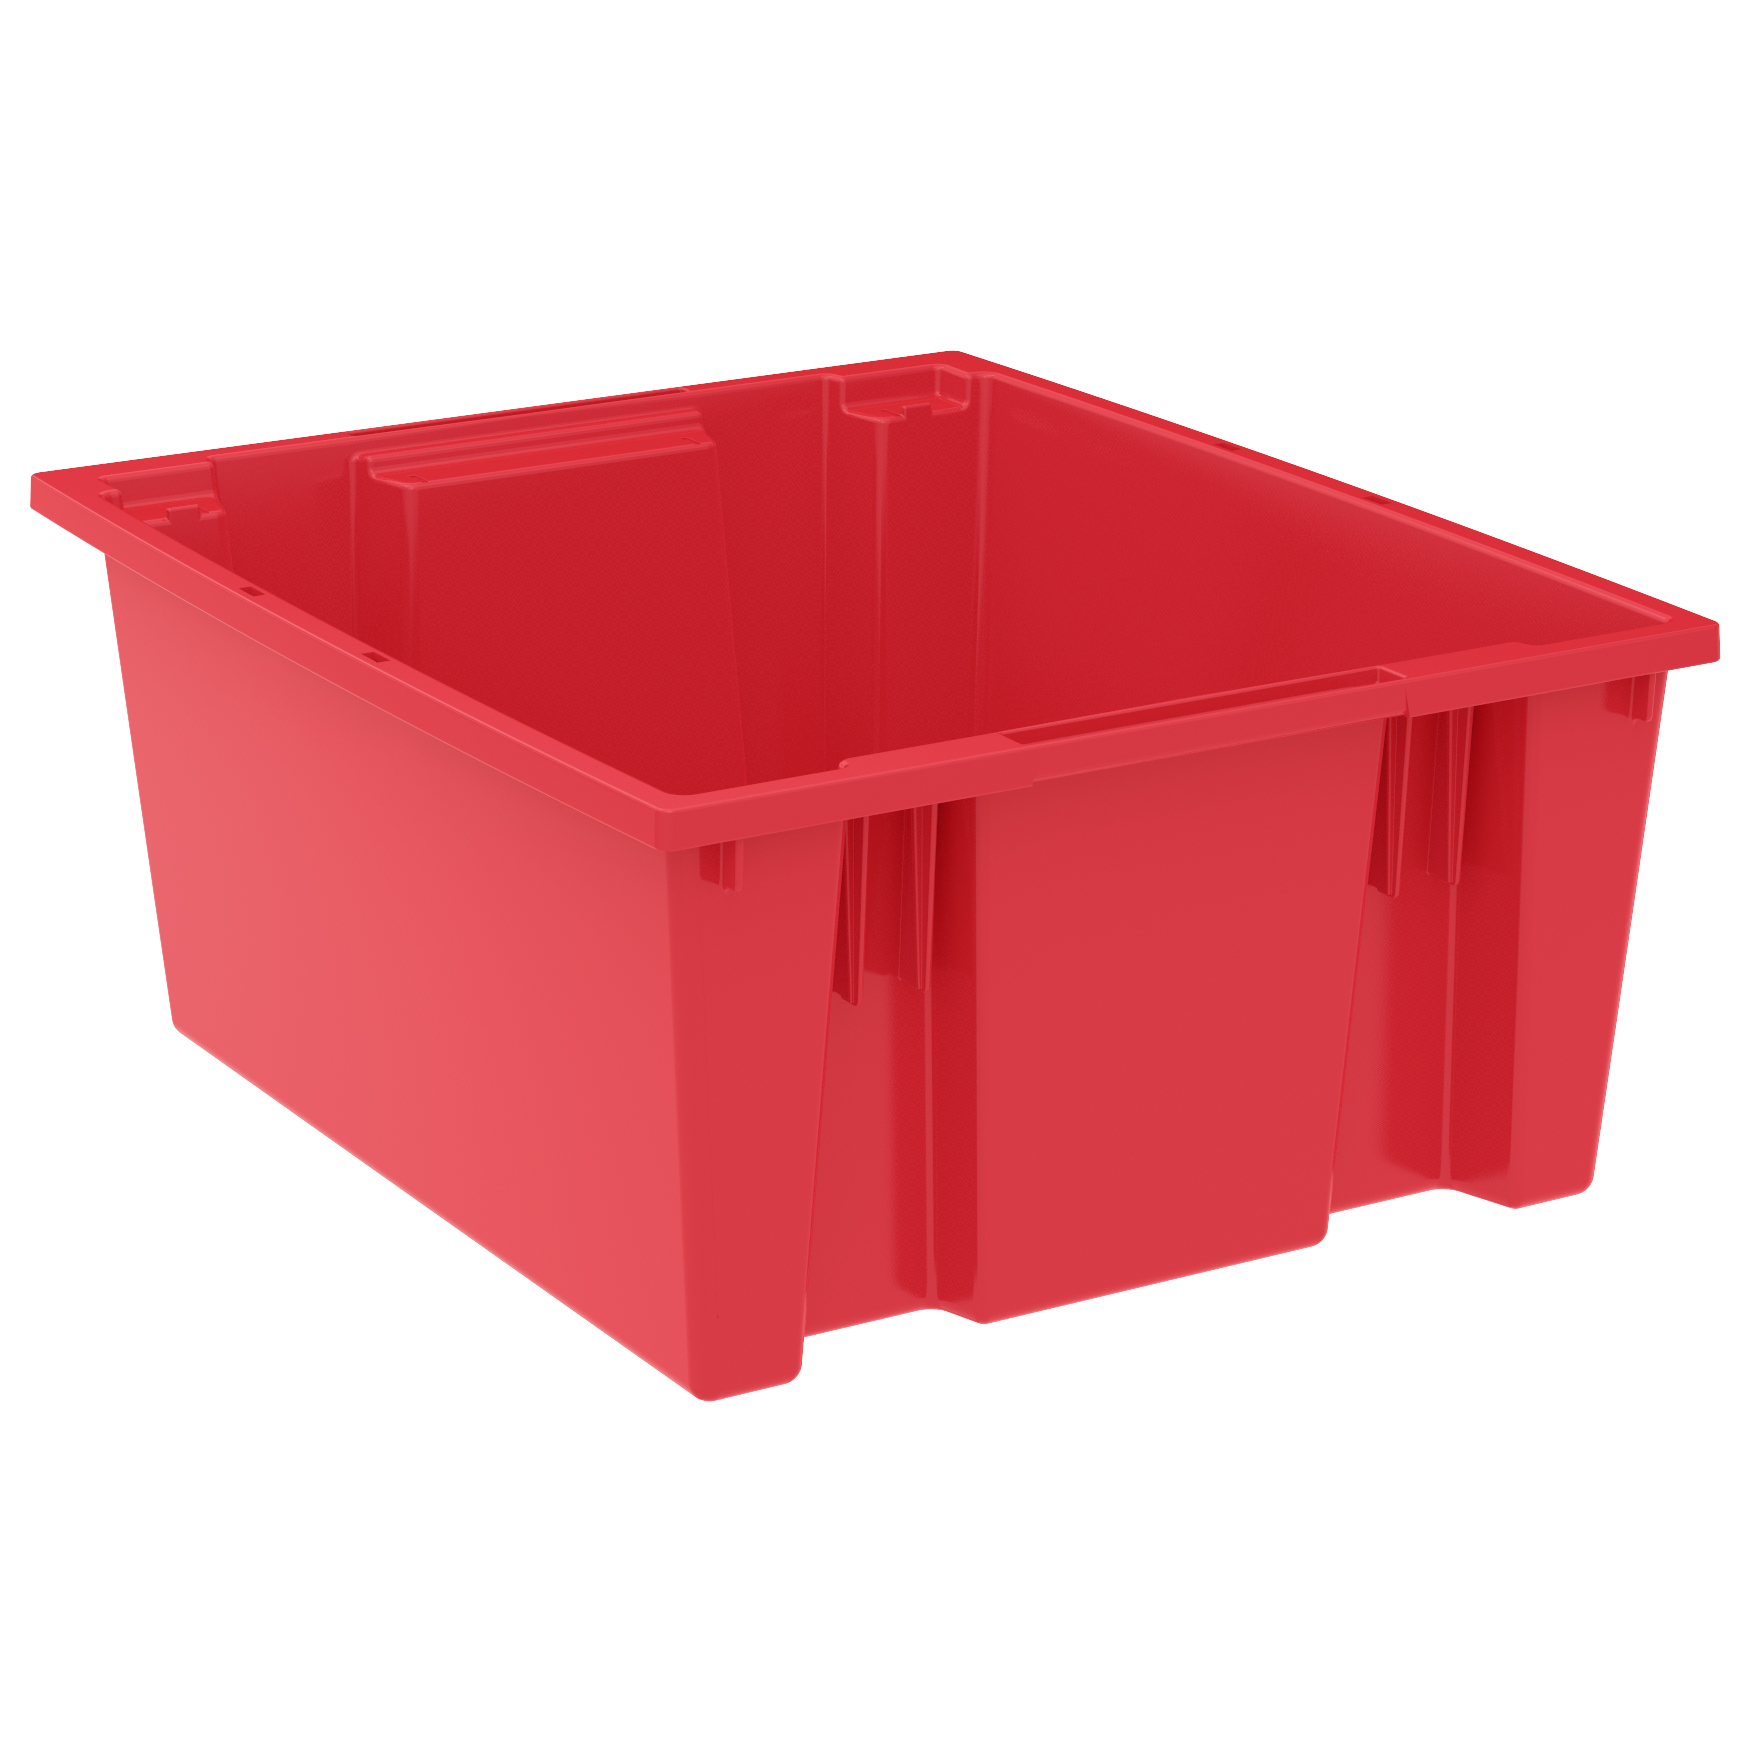 Nest & Stack Tote 23-1/2 x 19-1/2 x 10, Red (35225RED).  This item sold in carton quantities of 3.